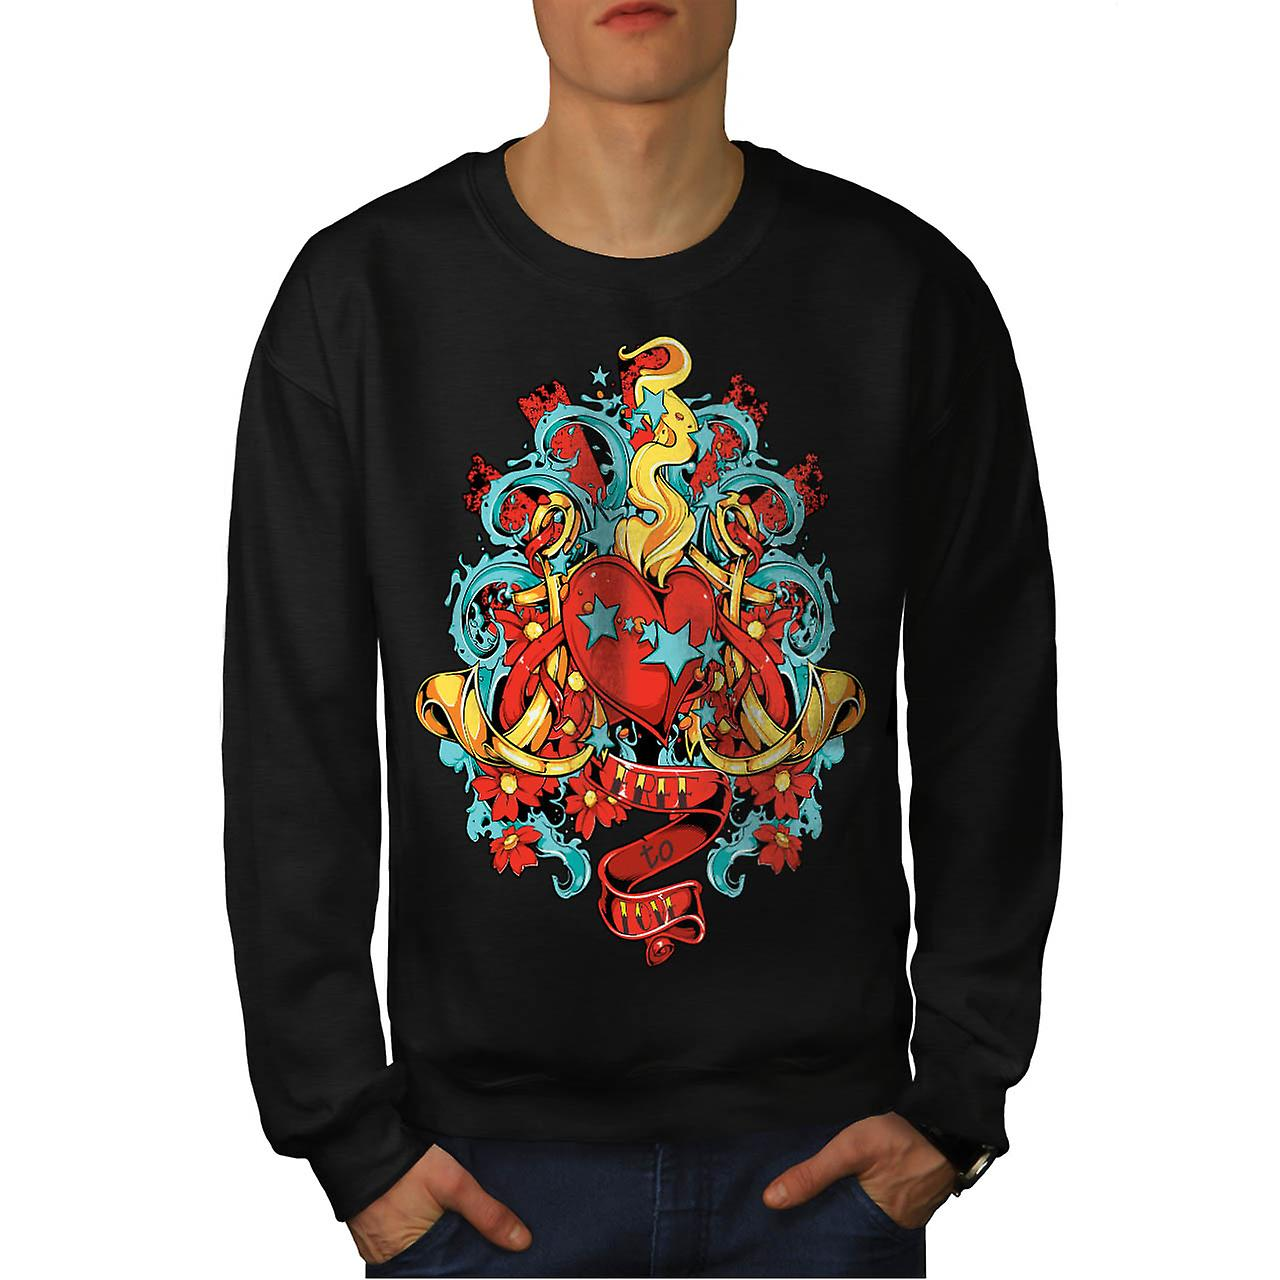 Free To Love Romantic Fire Heart Men Black Sweatshirt | Wellcoda